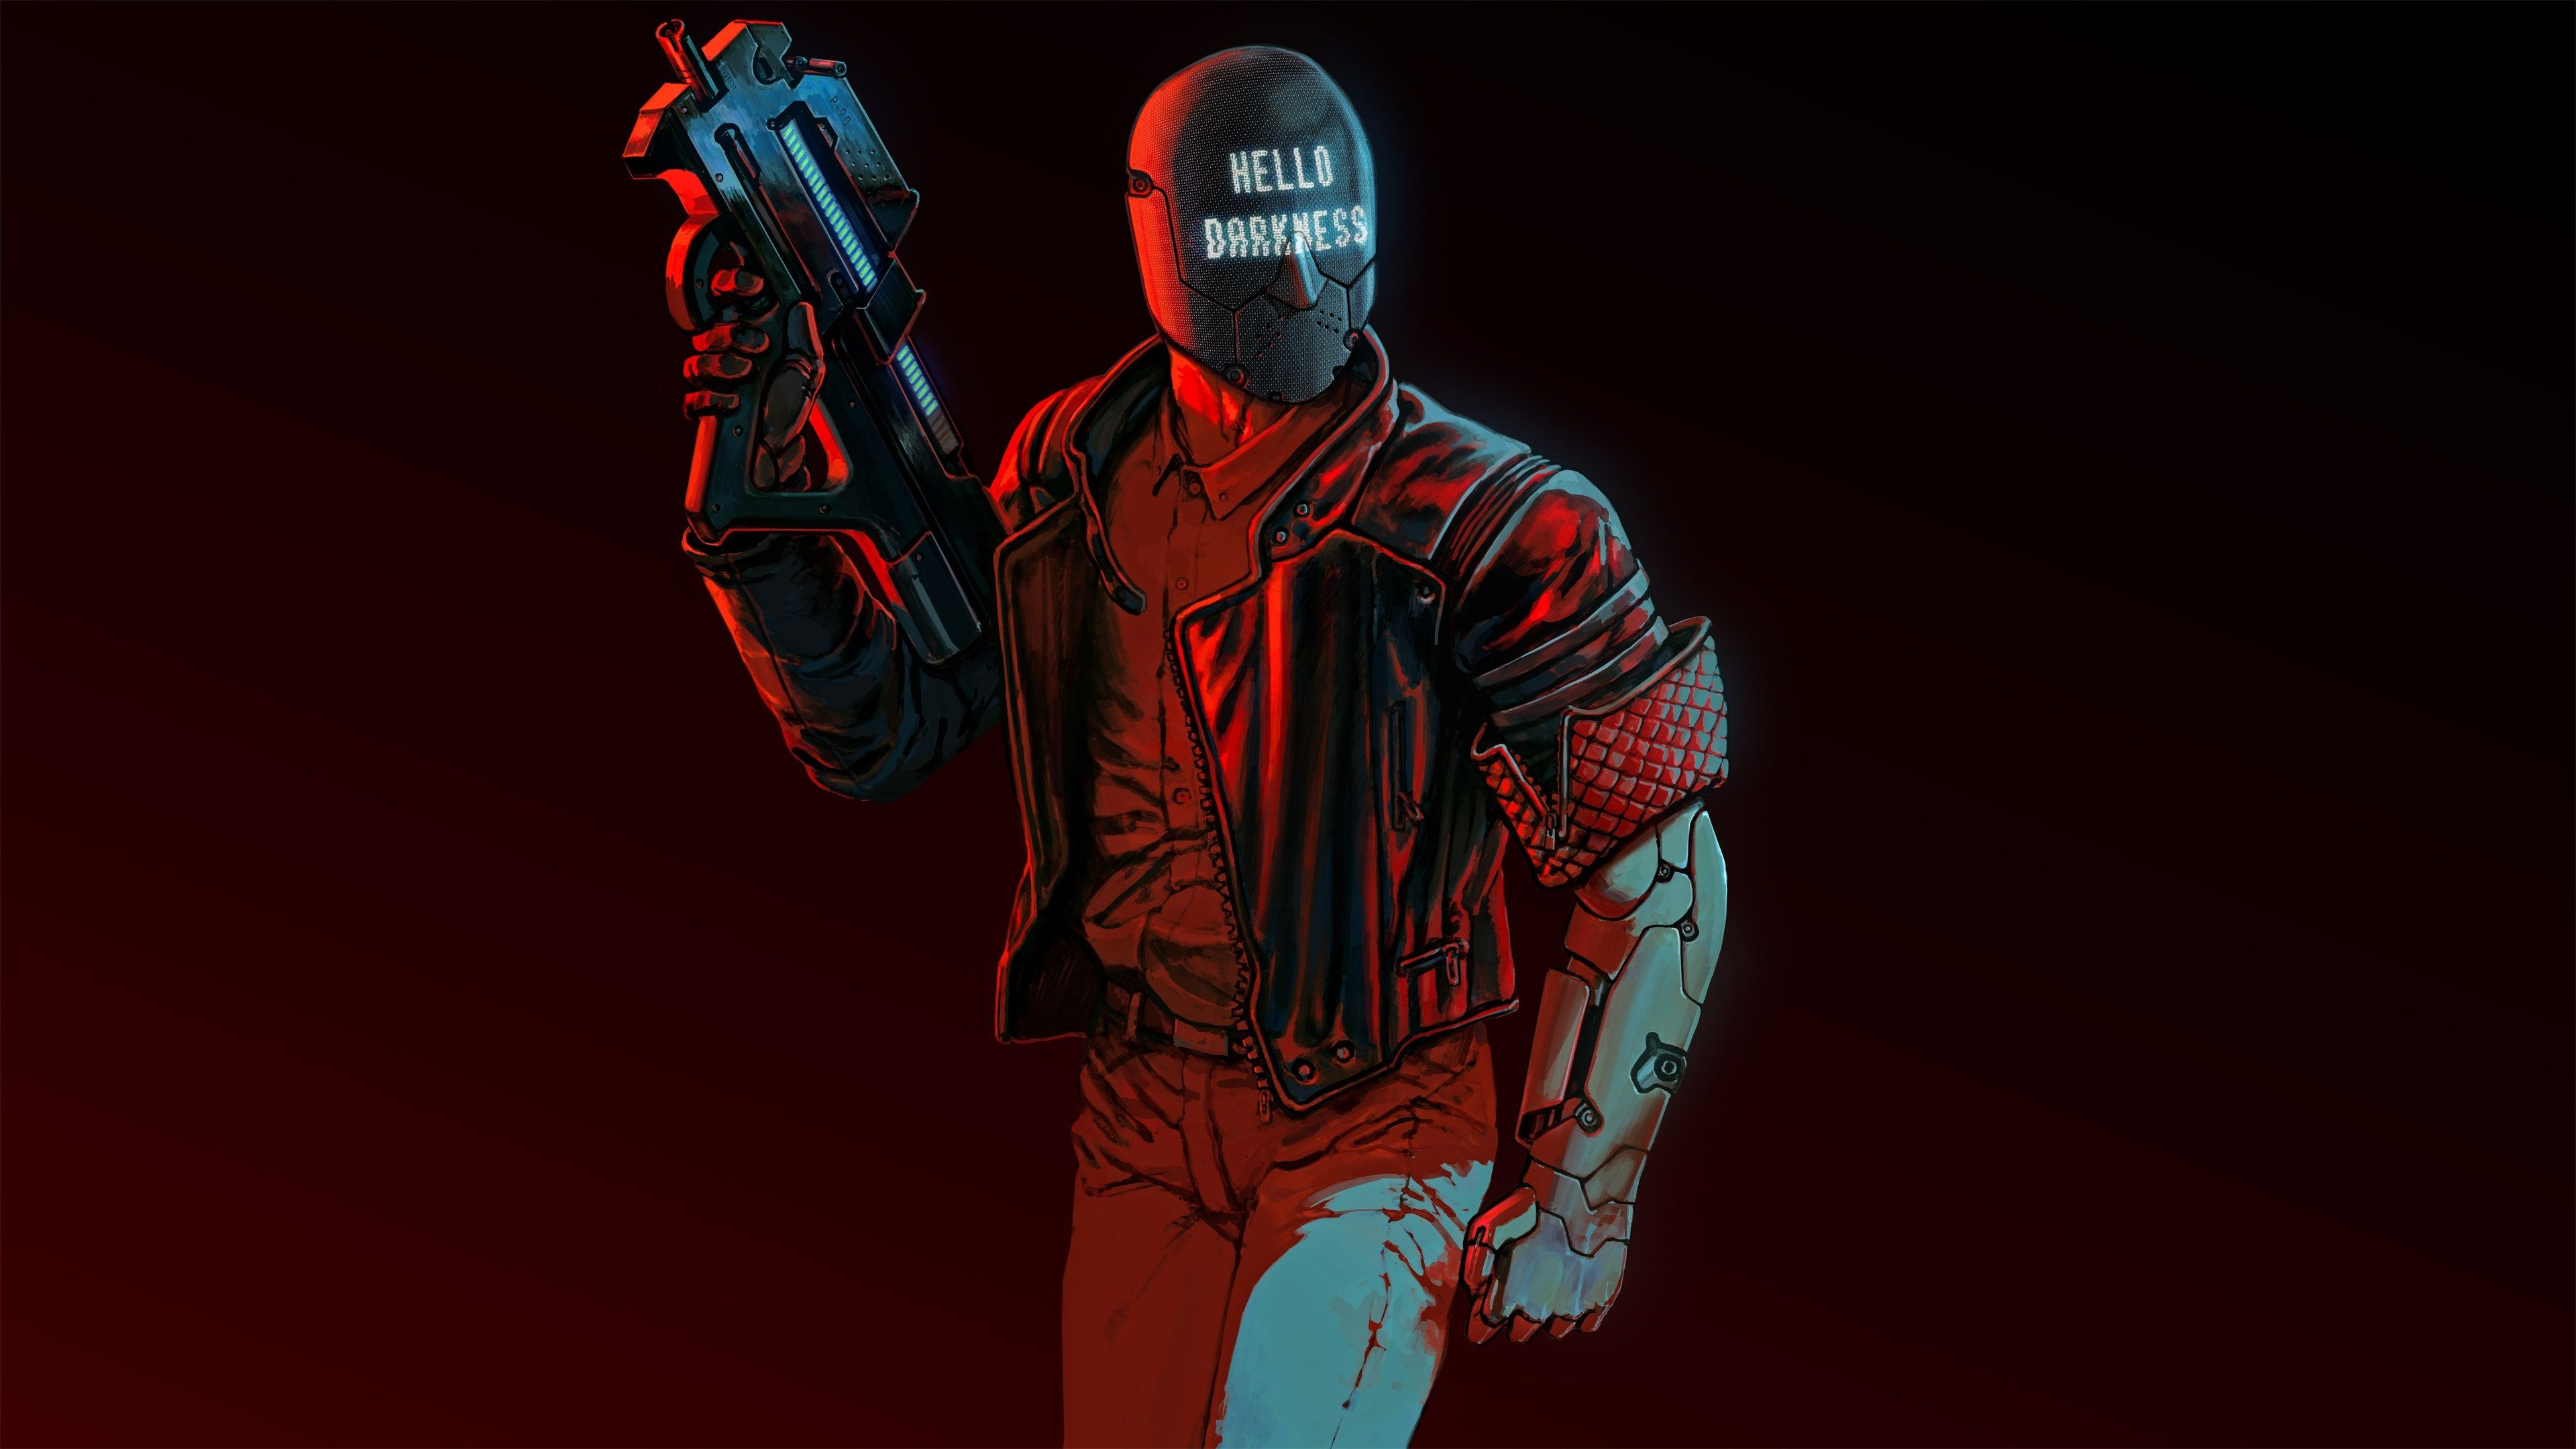 3840x2160 Ruiner 4k Awesome Wallpaper Hd Gaming Wallpapers Best Gaming Wallpapers 4k Gaming Wallpaper